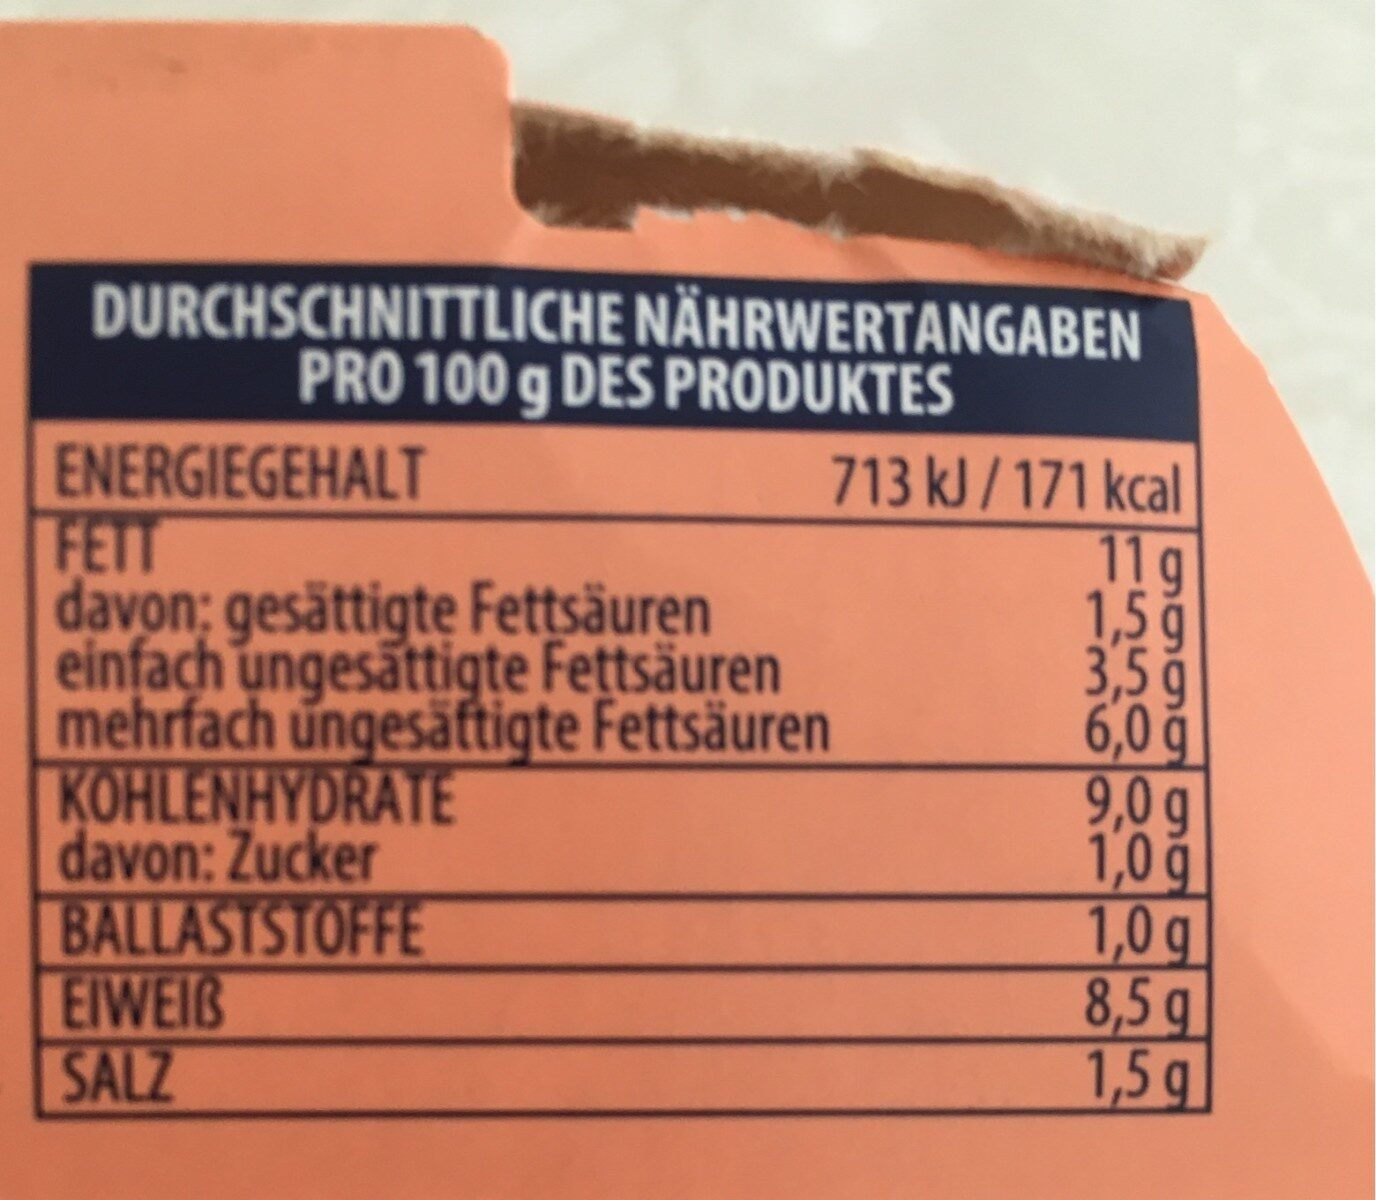 Saumiquet Rio mare Thunfisch-Salat Italiana - Nutrition facts - fr